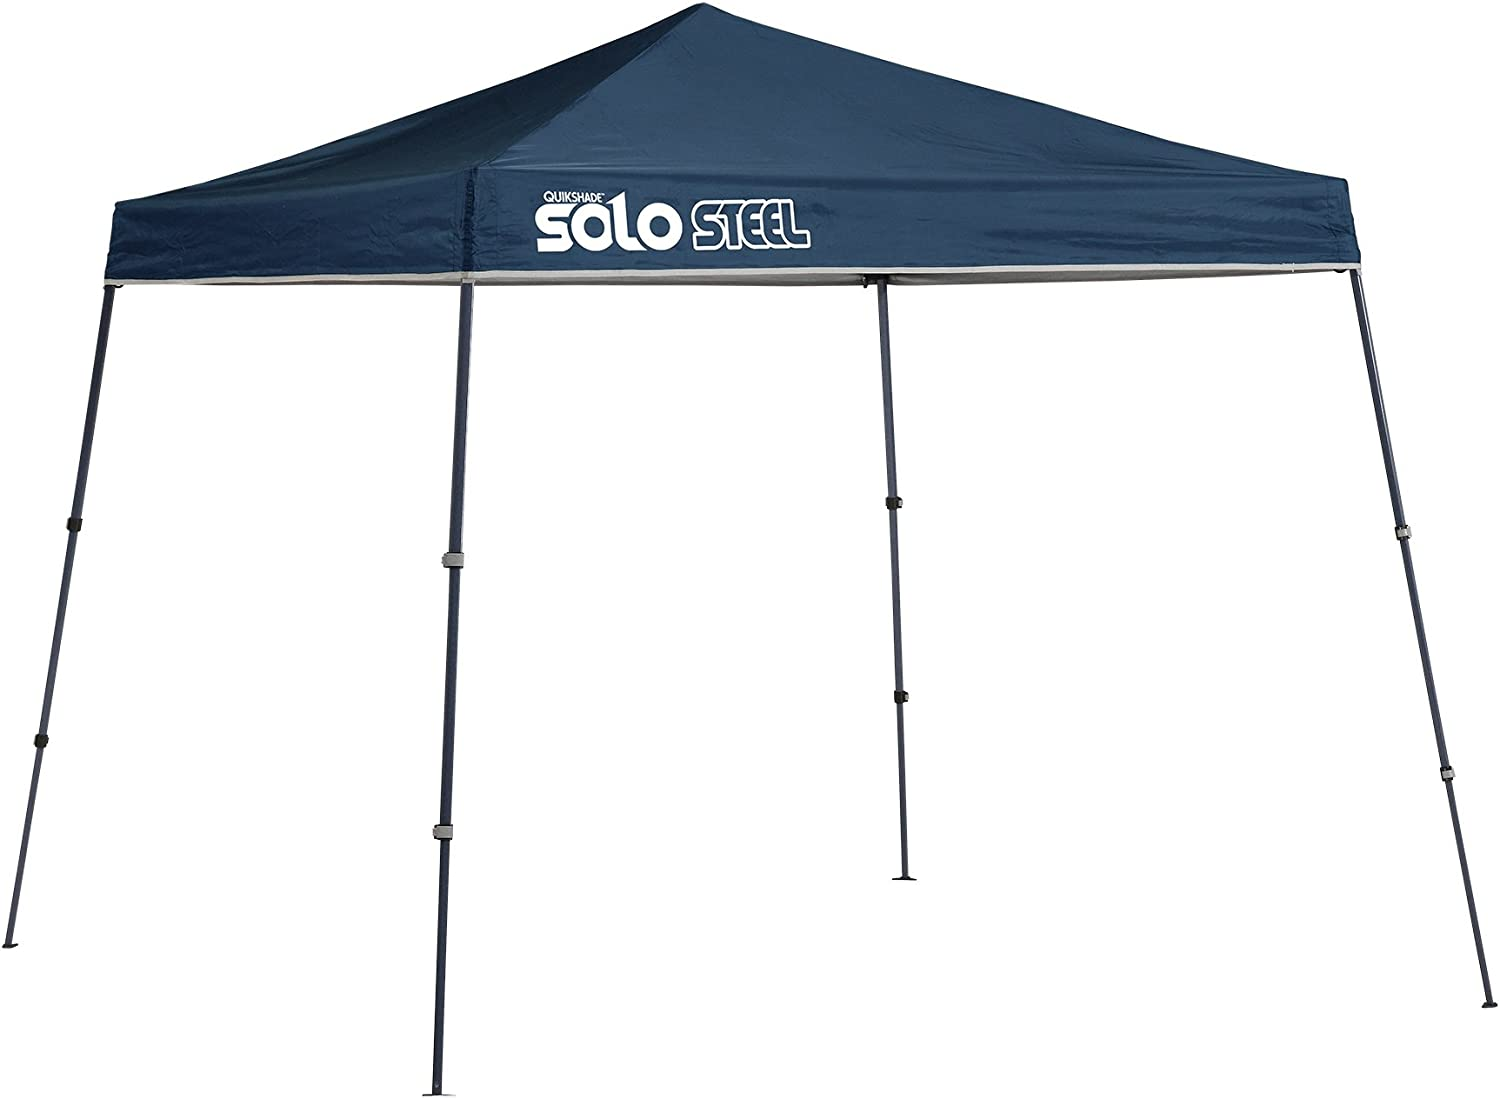 Quik Shade Solo Steel 9 x 9 ft. Slant Leg Canopy, Midnight Blue